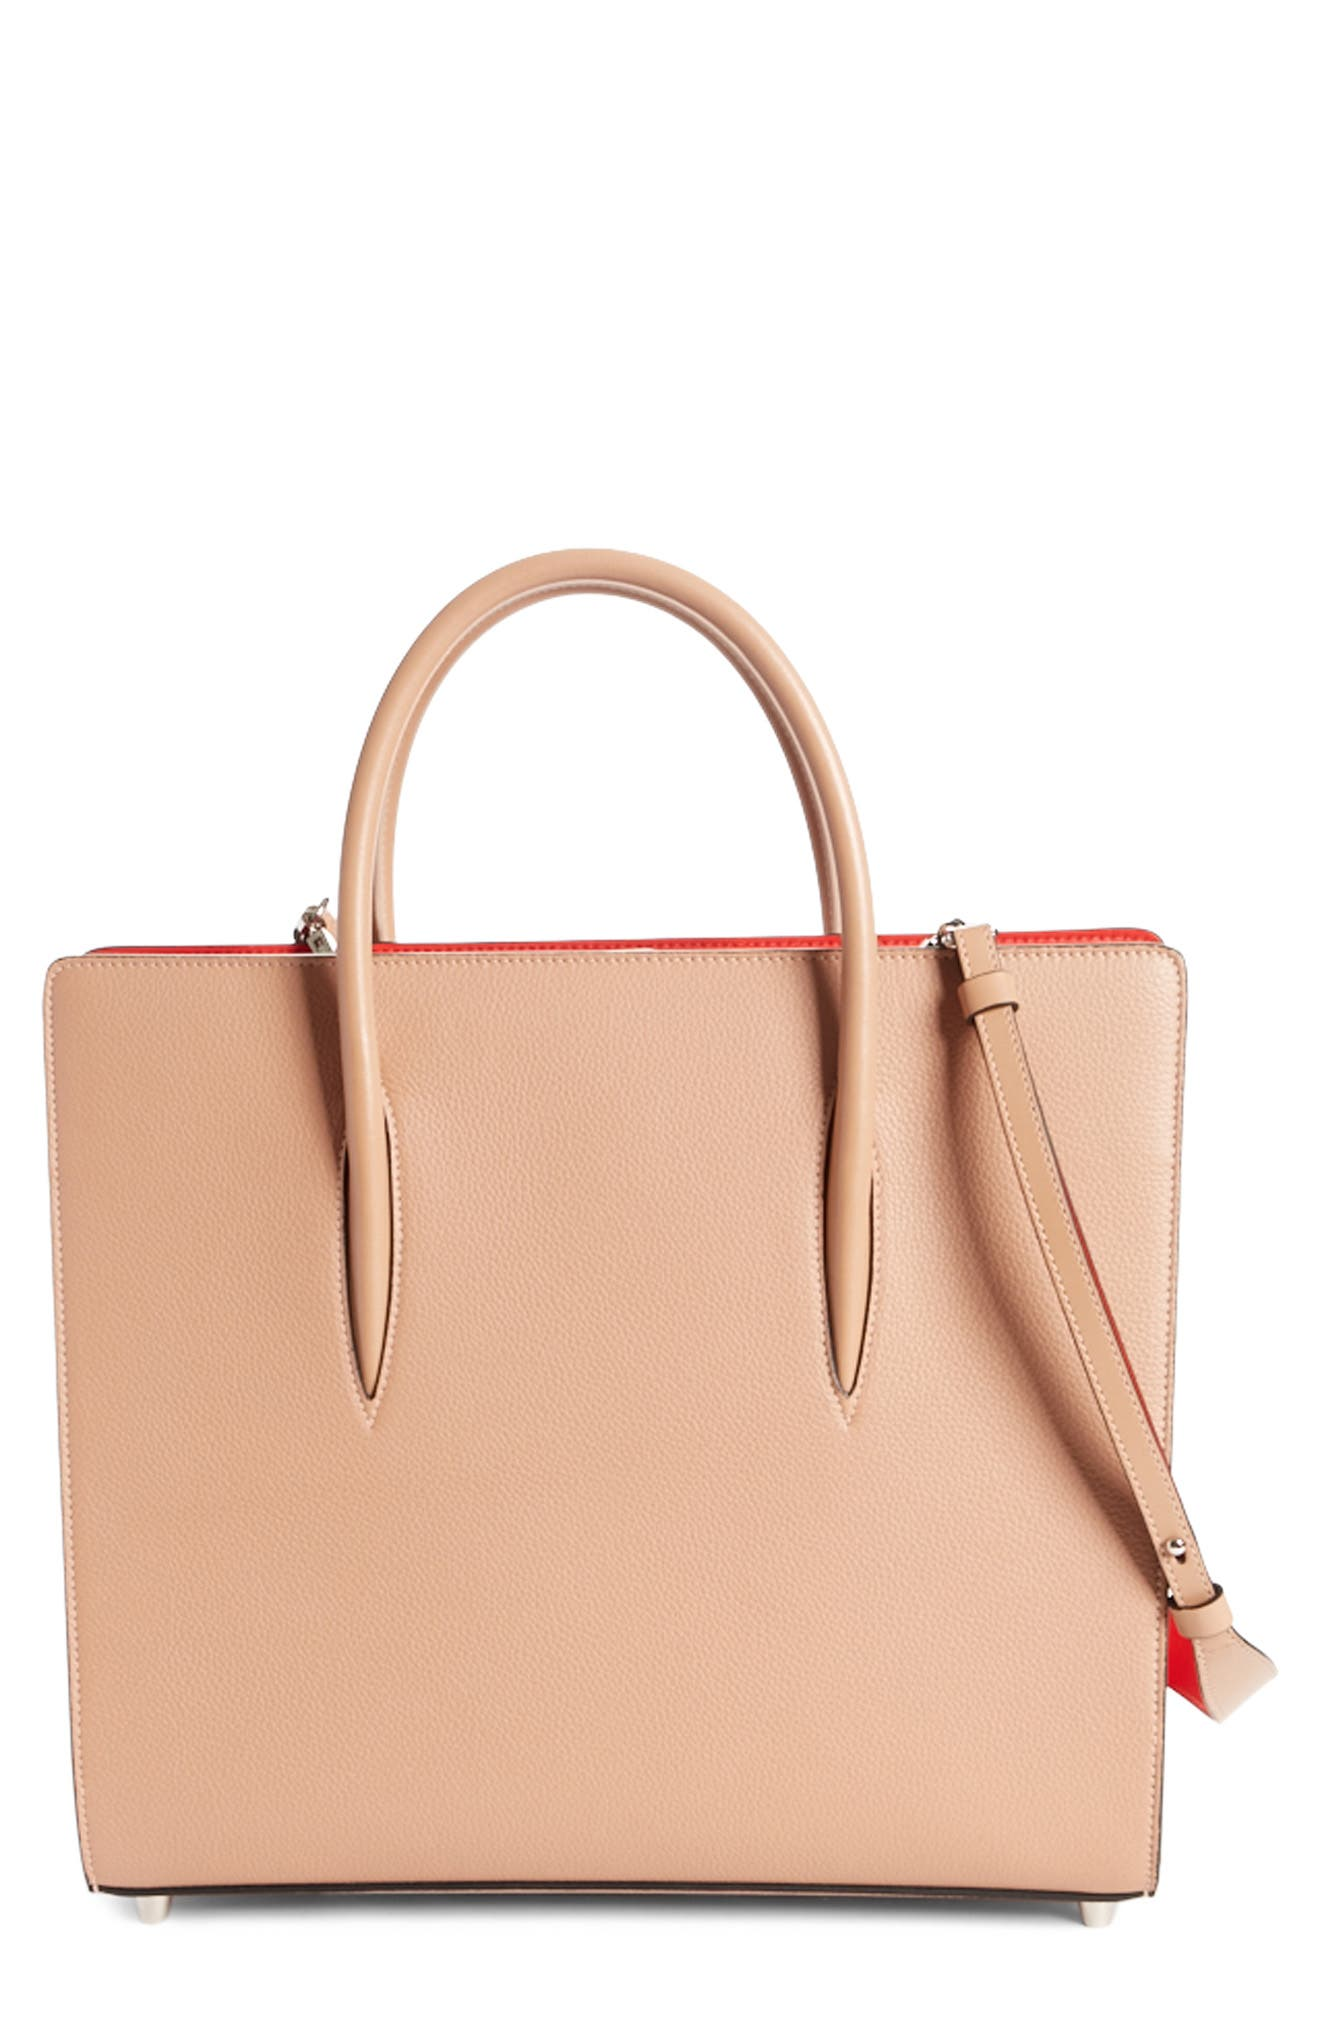 Large Paloma Leather Tote,                             Main thumbnail 1, color,                             Nude/ Nude